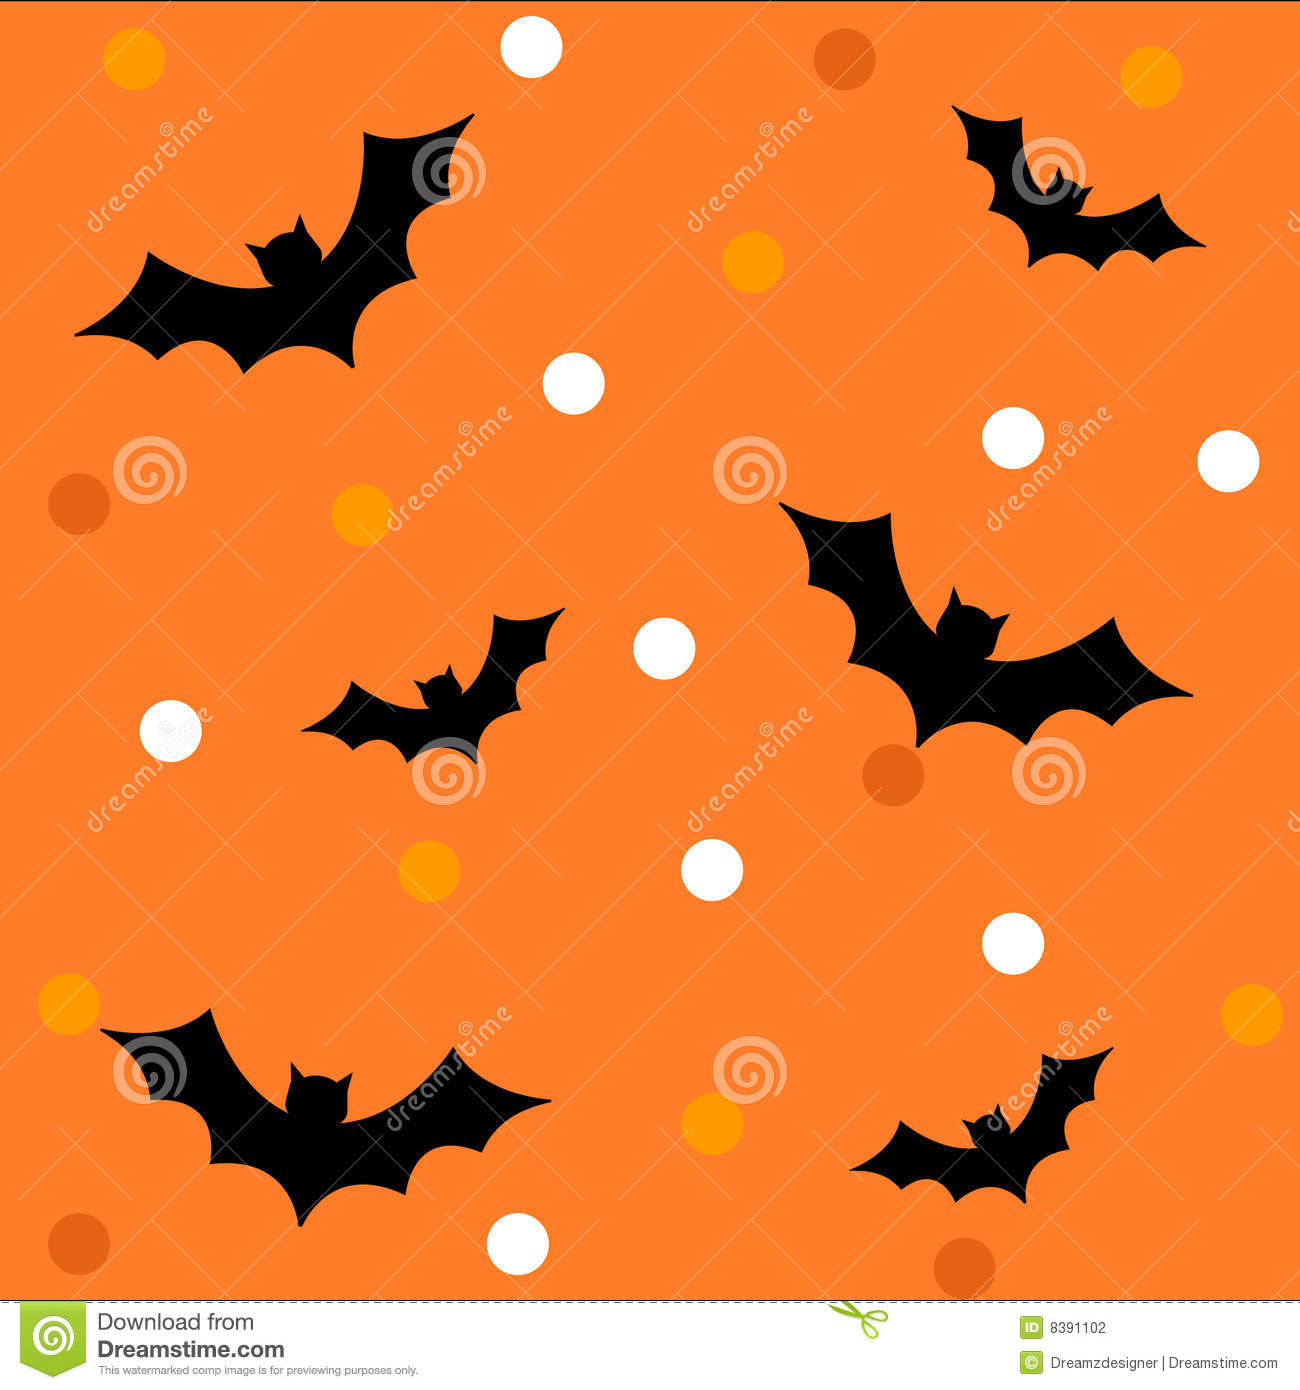 Cool Wallpaper Halloween Pastel - halloween-pattern-background-8391102  You Should Have_811529.jpg